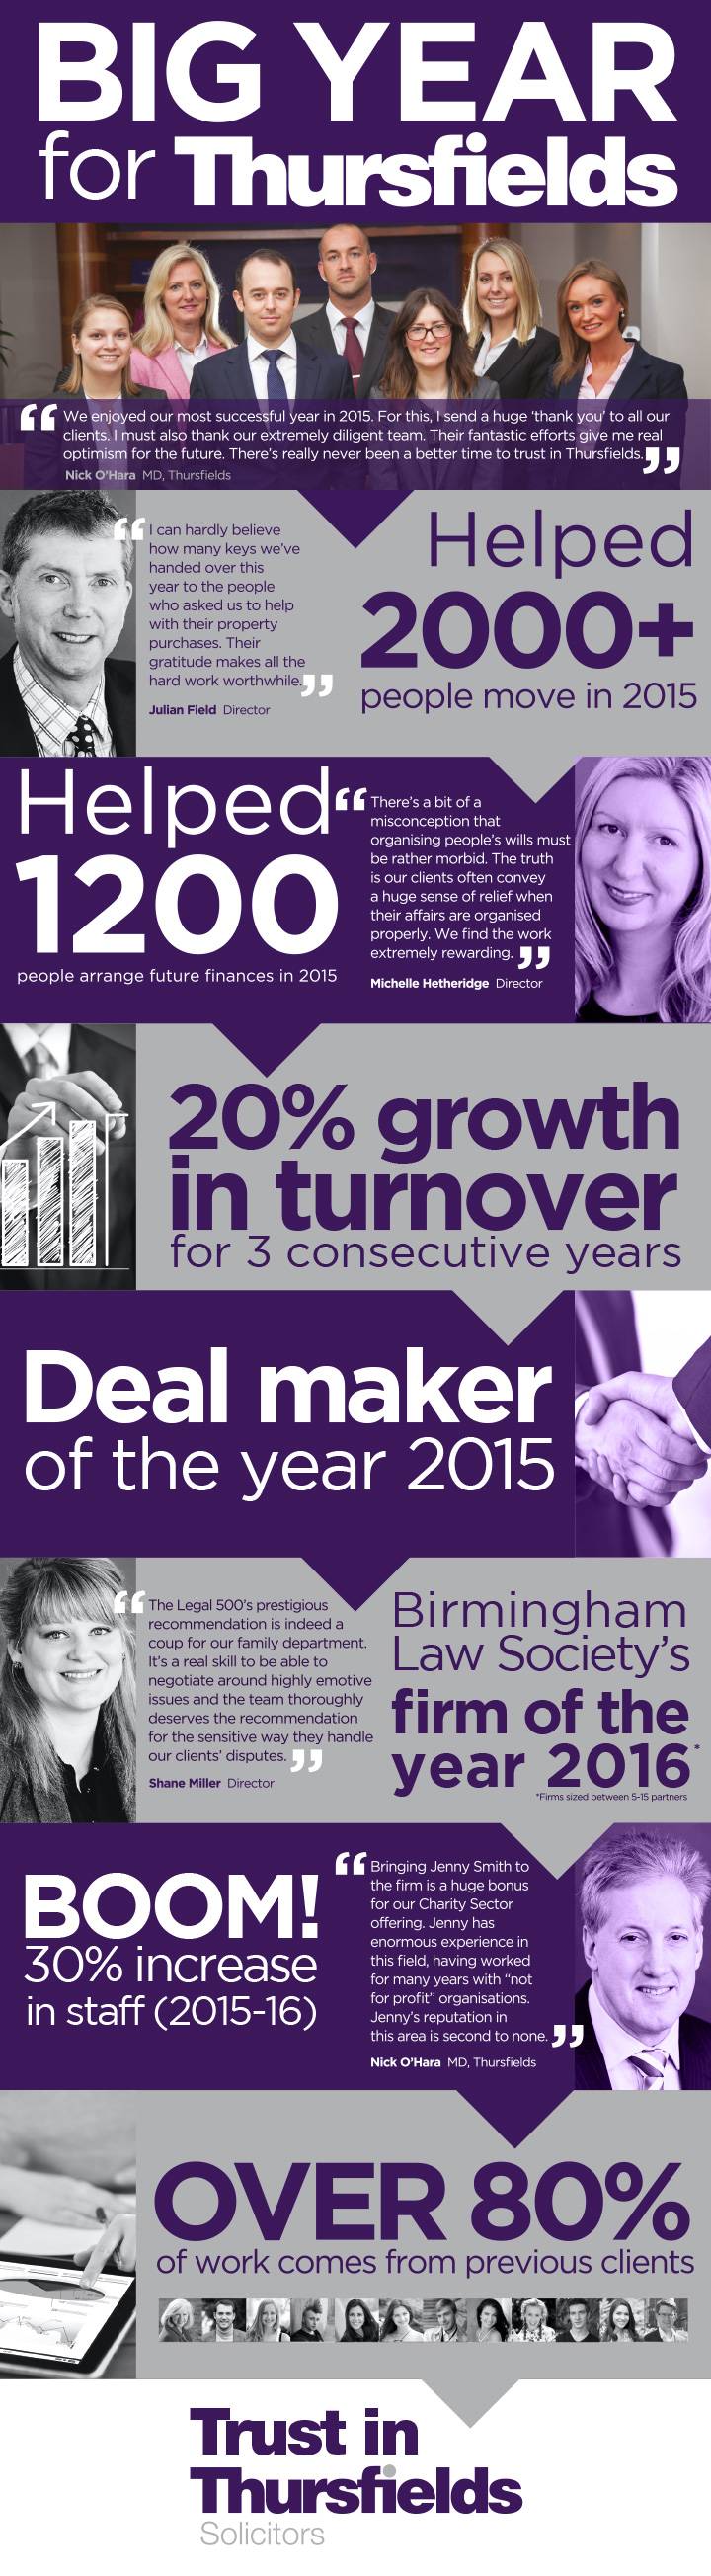 big-year-for-thursfields-infographic